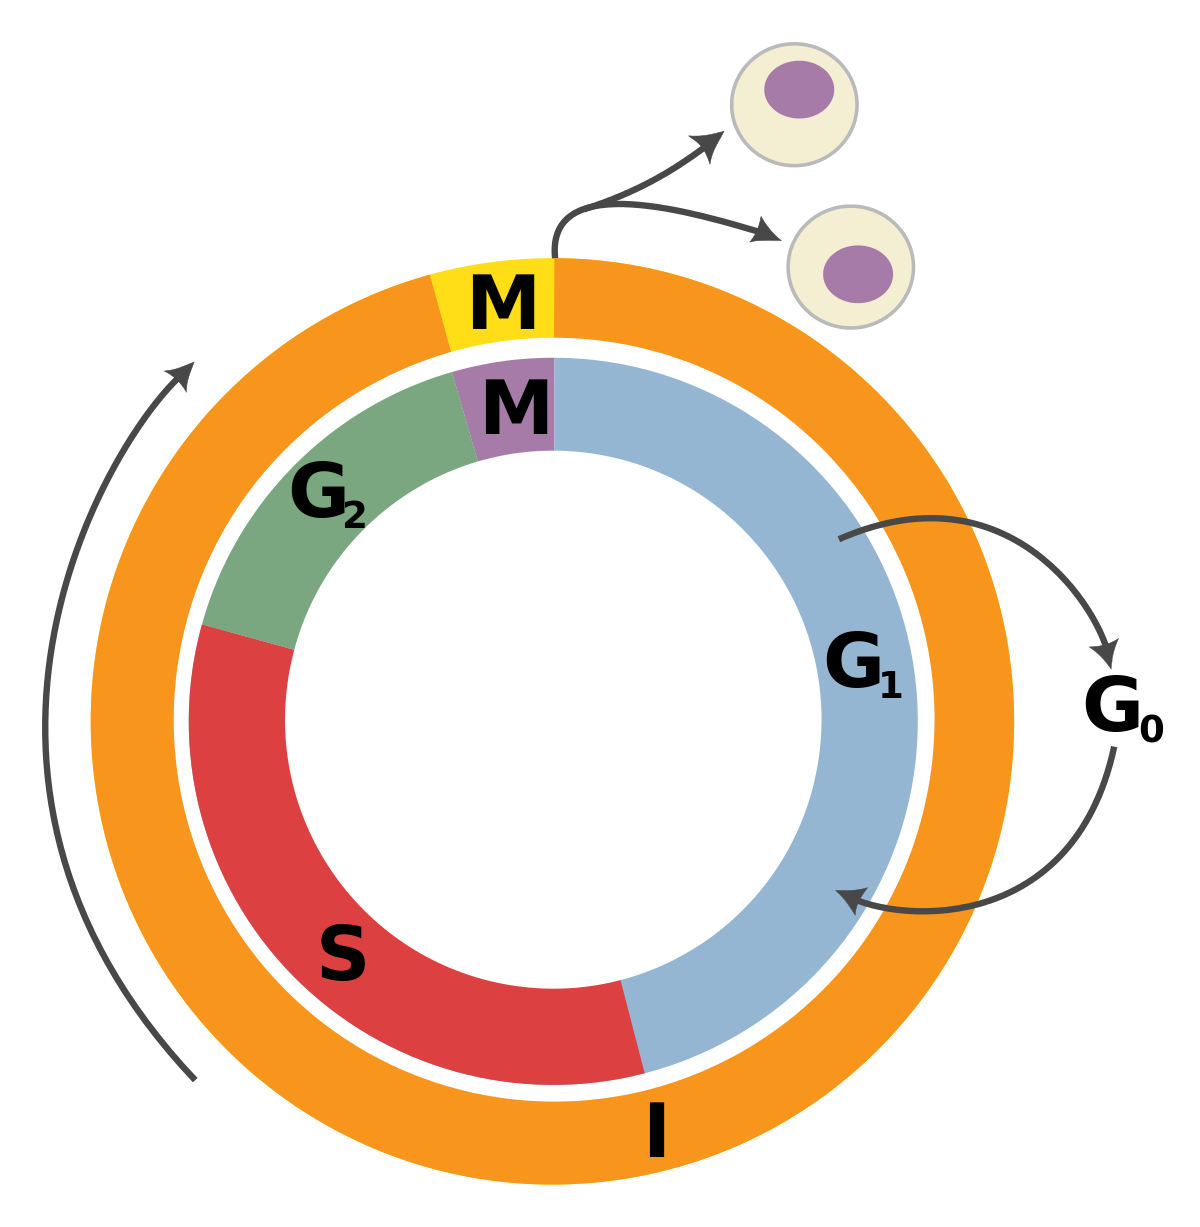 Familial cancer tumour suppressor genes, [Genetic susceptibility to cancer].